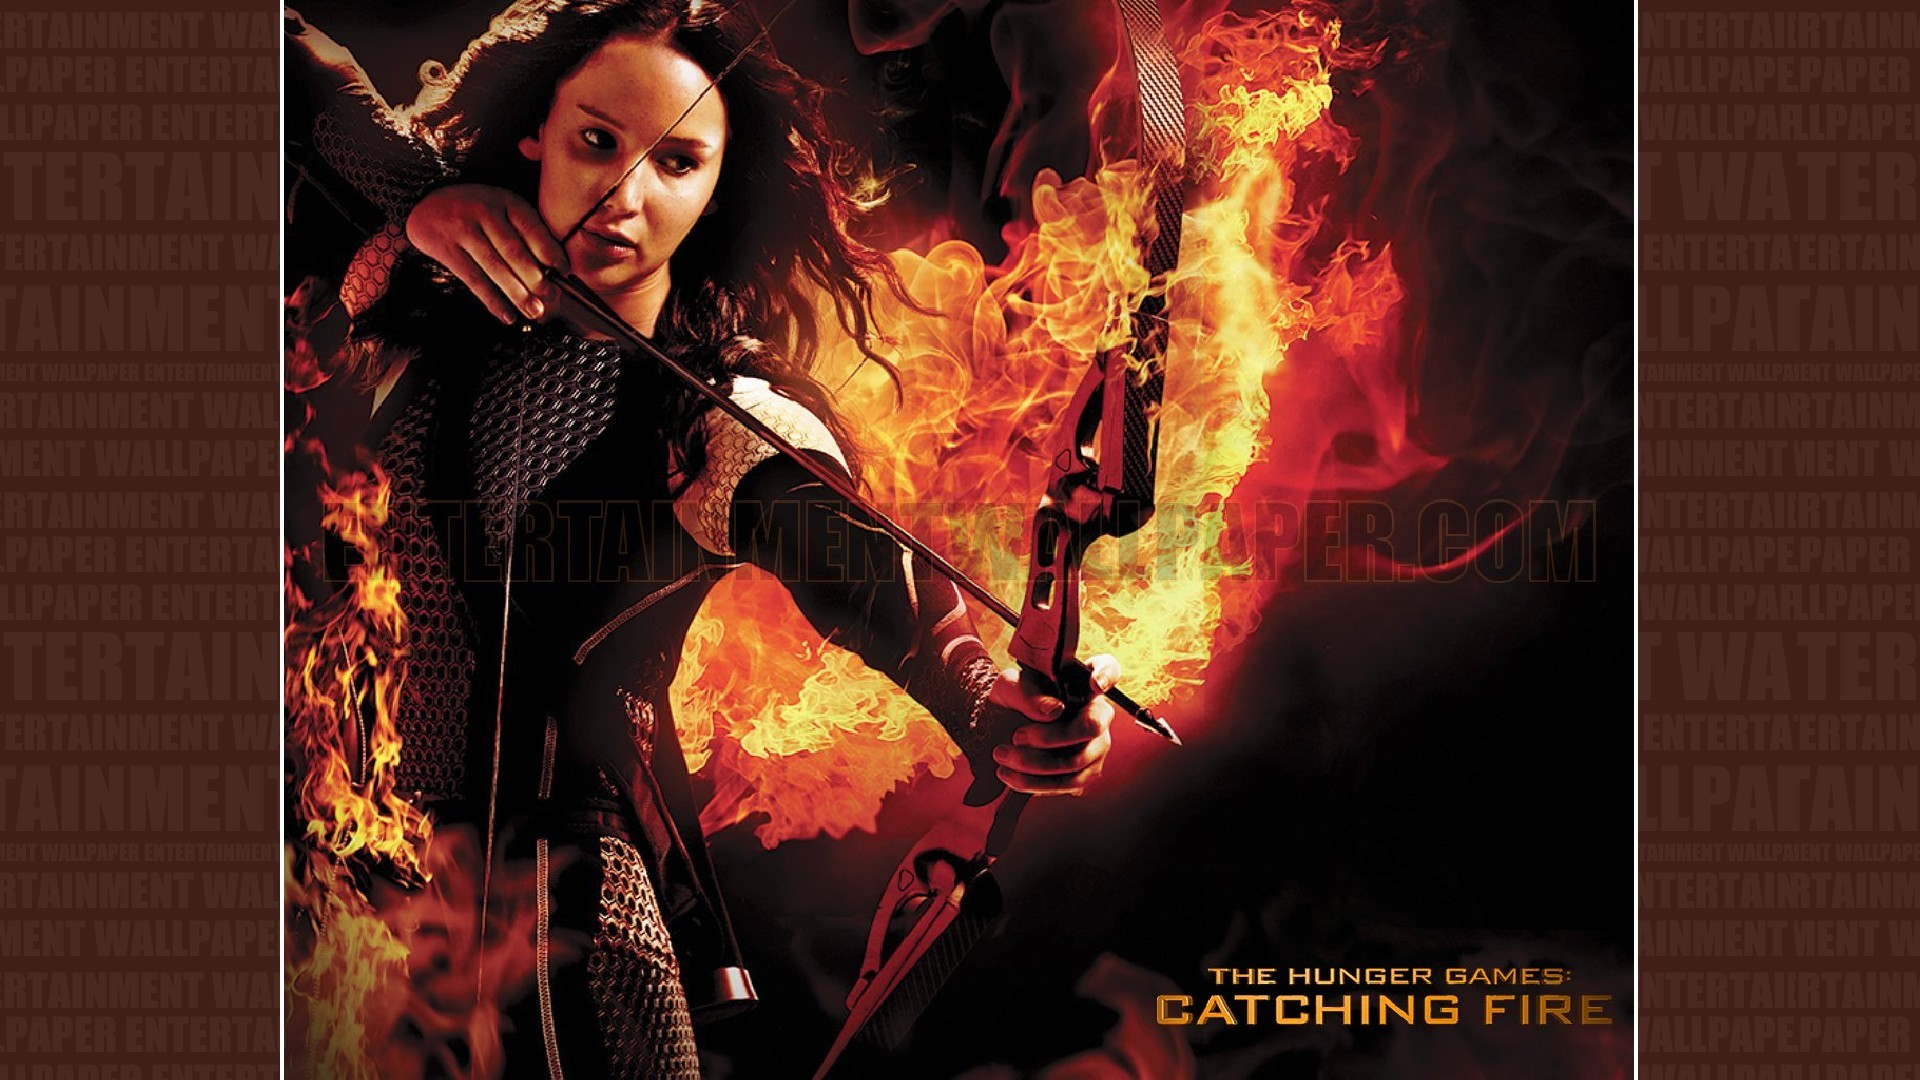 1920x1080 The Hunger Games Catching Fire Katniss